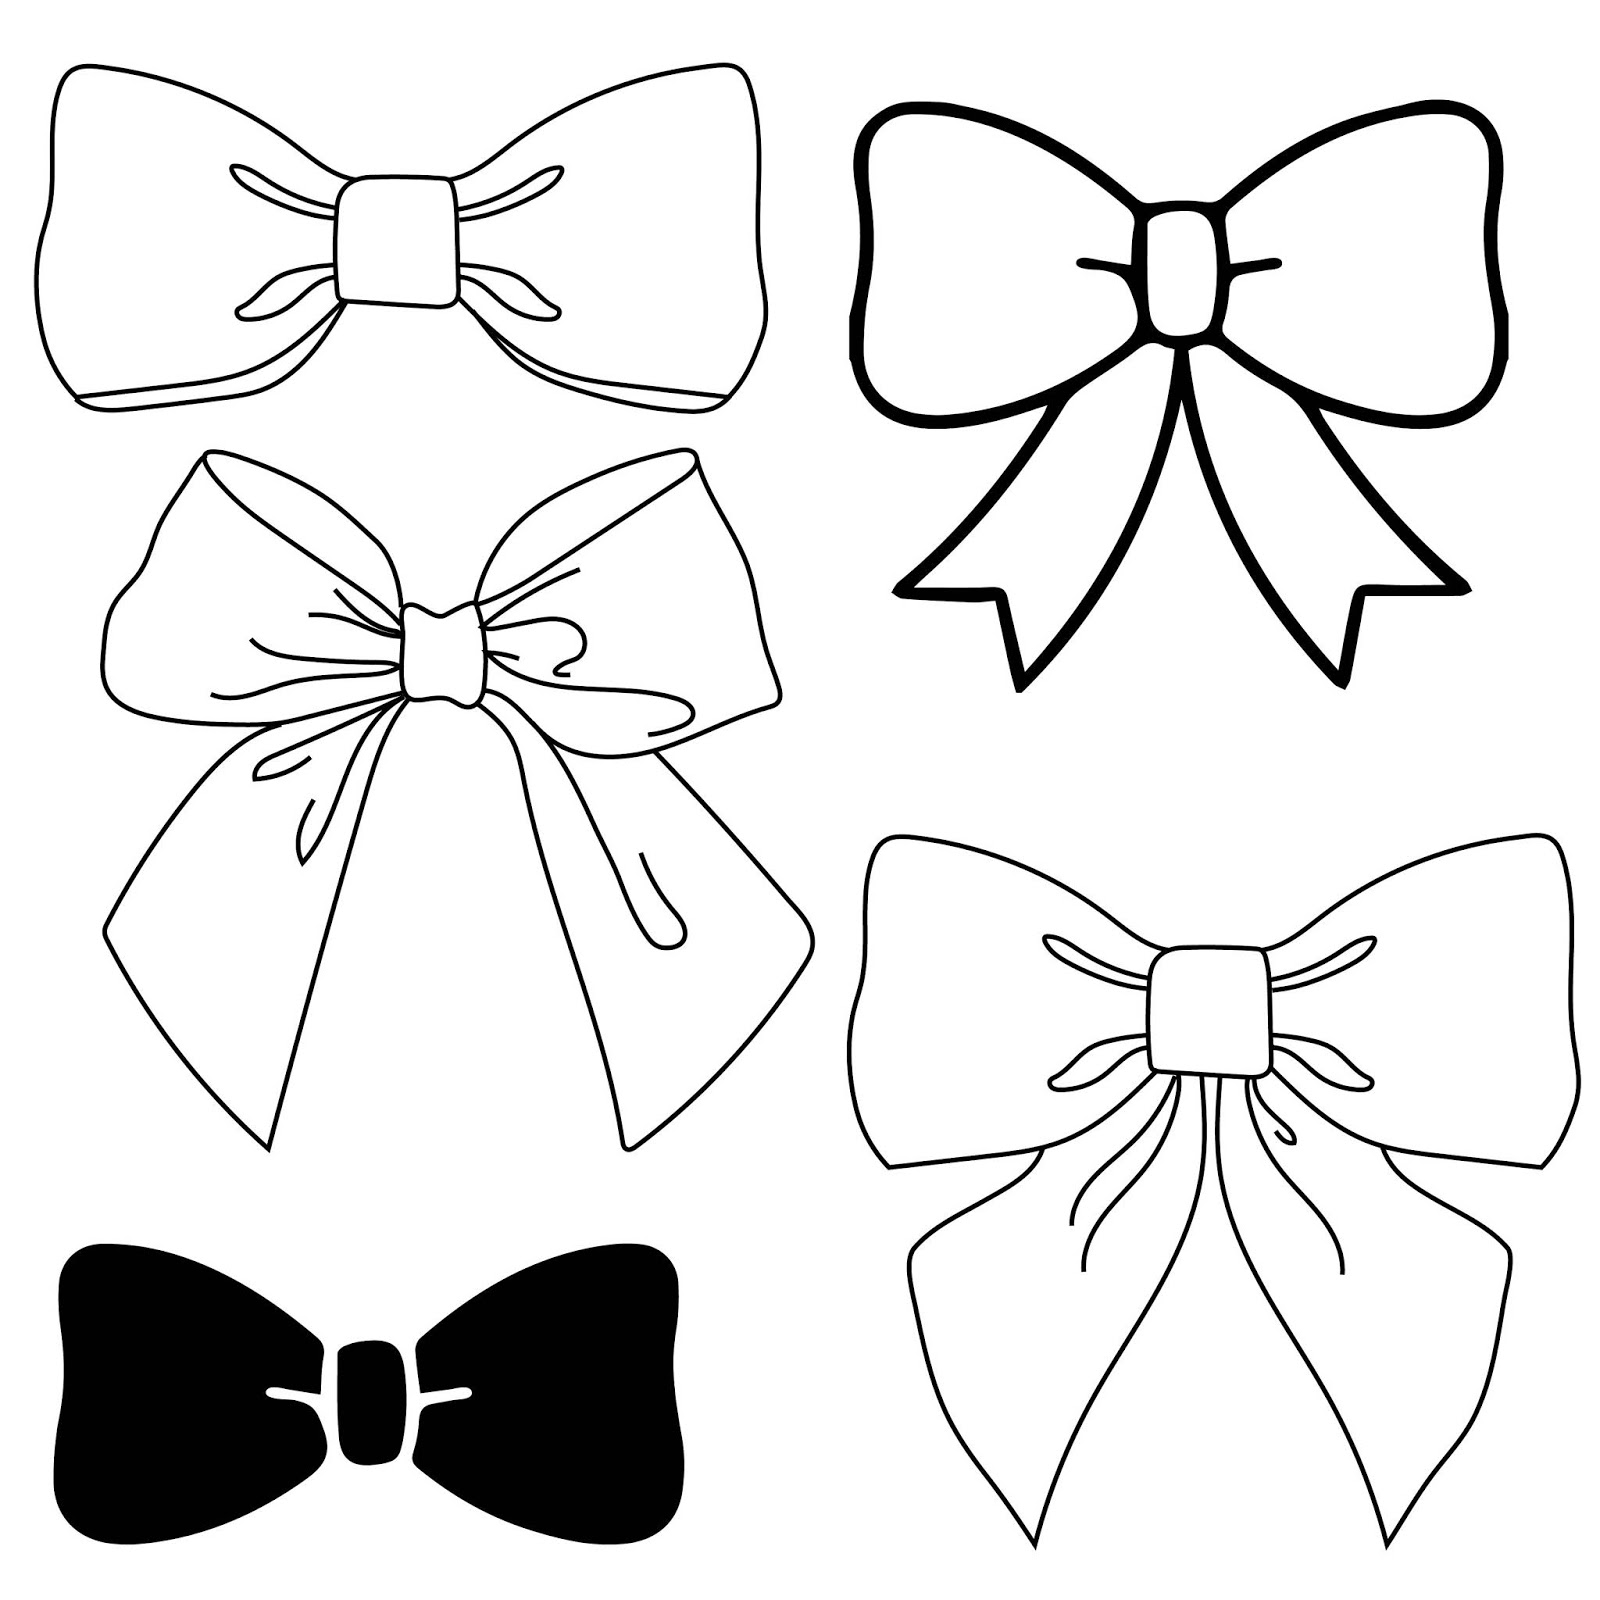 Download Free Bow Silhouette SVG DXF Cut File - Free DXF SVG ...